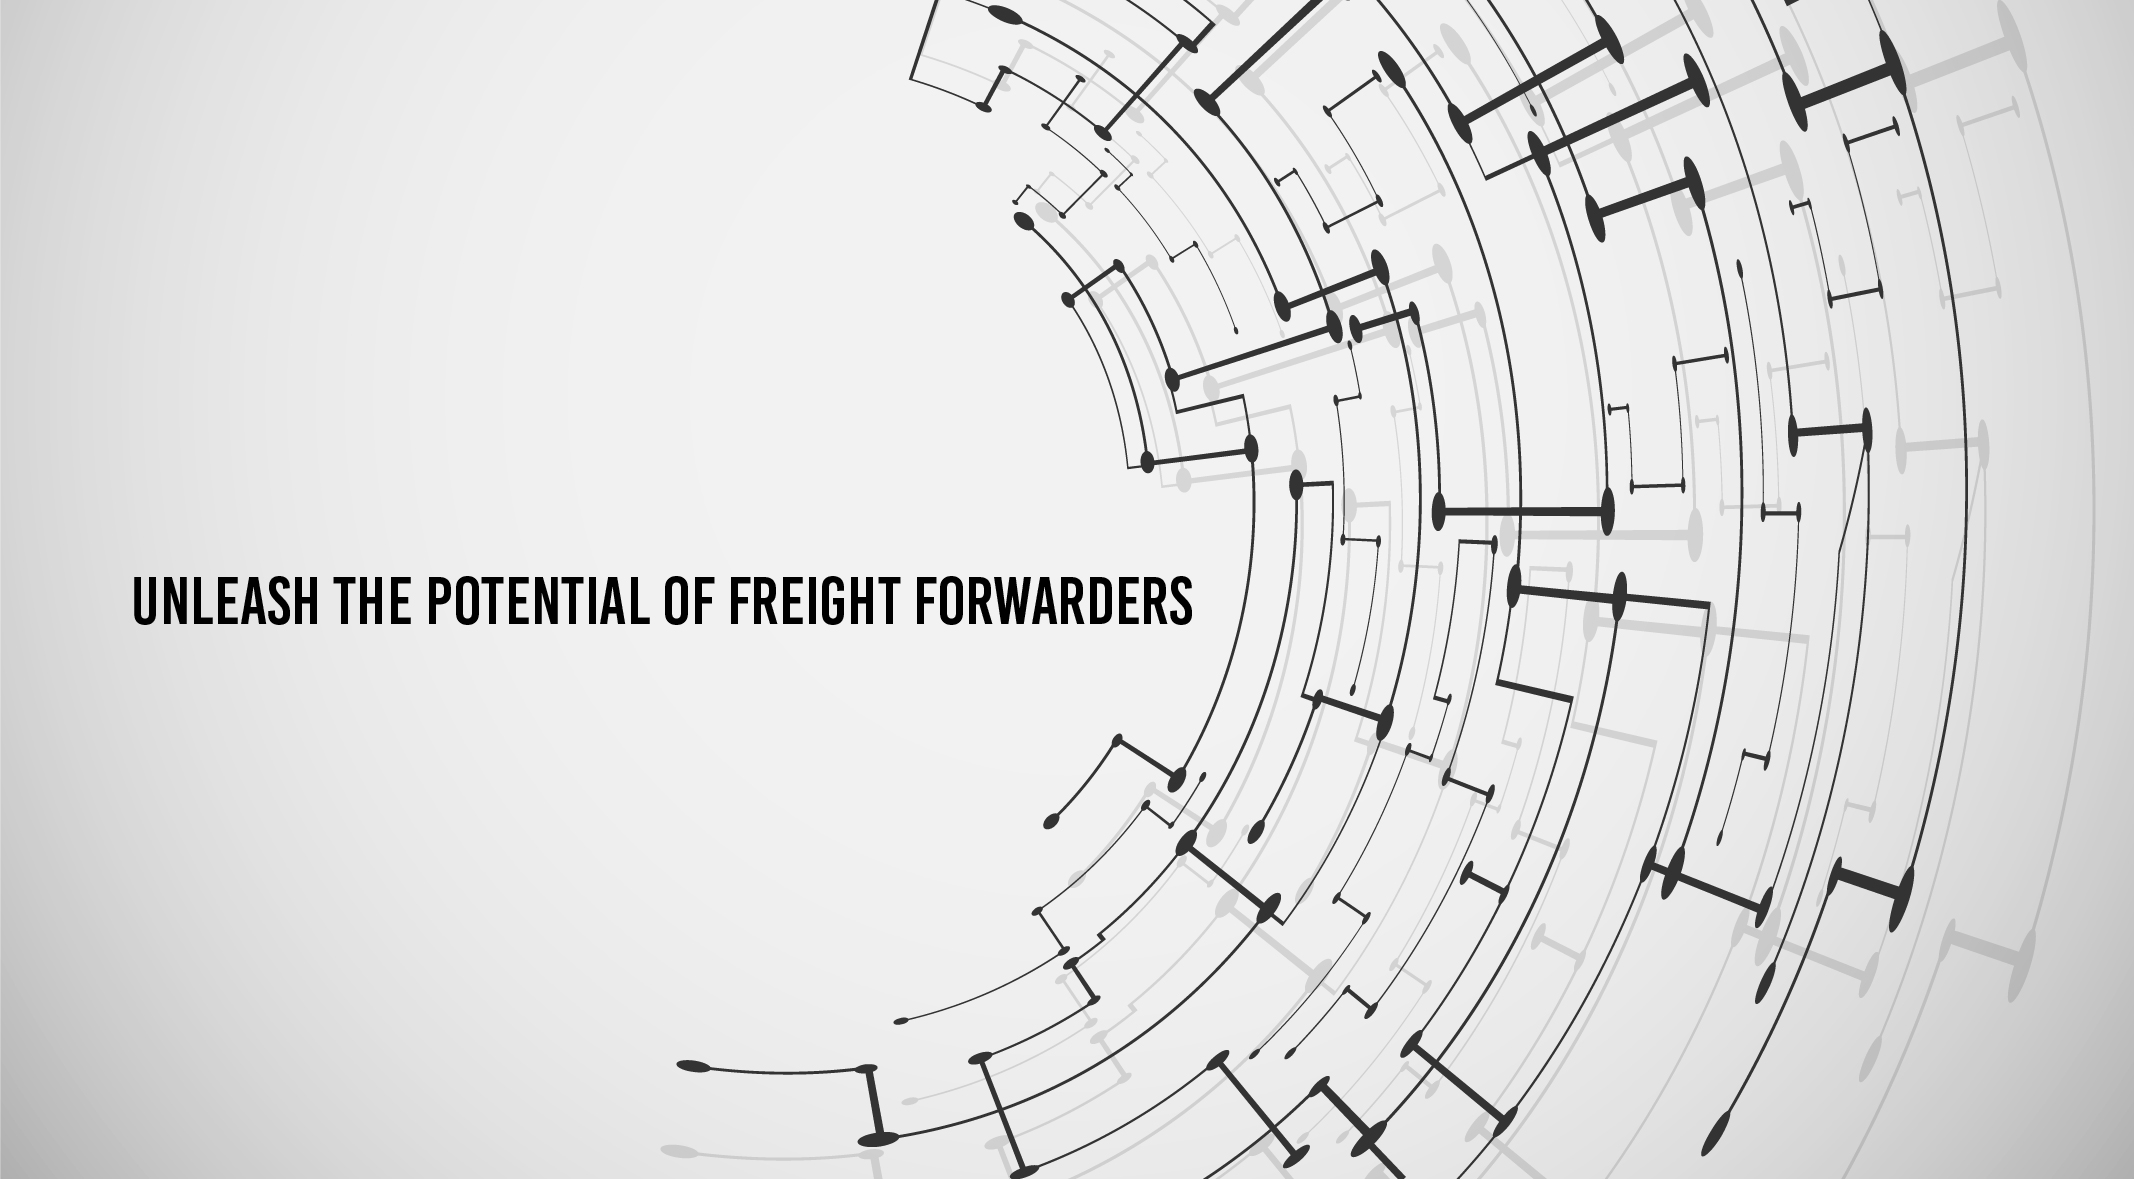 unleash the potential of freight forwarders